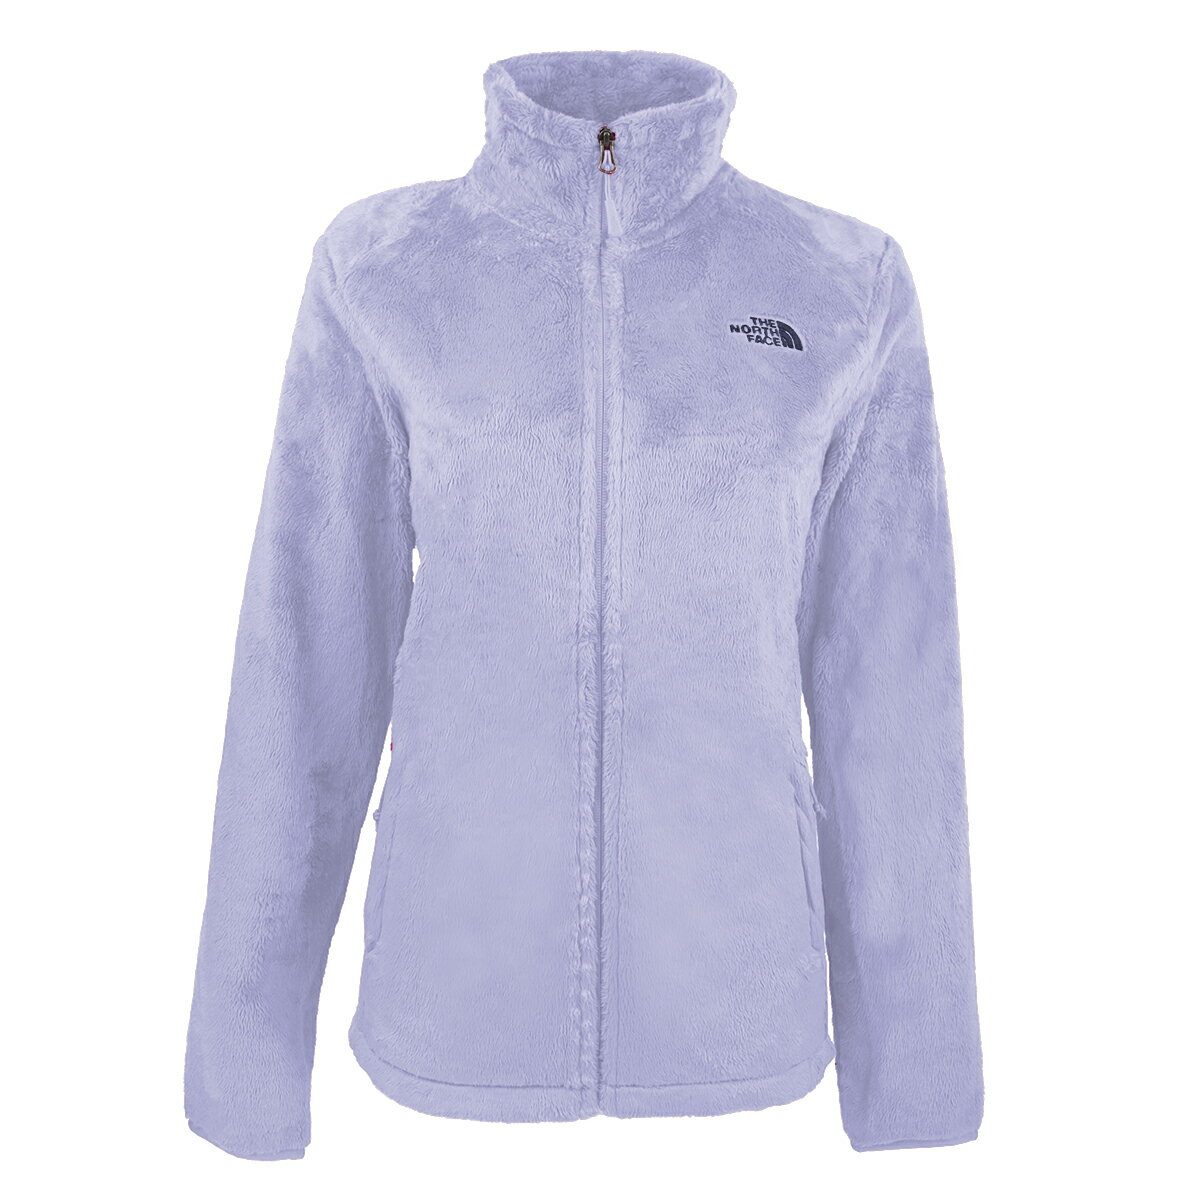 38f820a94 The North Face Women's Osito 2 Fleece Jacket Clear Lake Blue/Blue 2XL